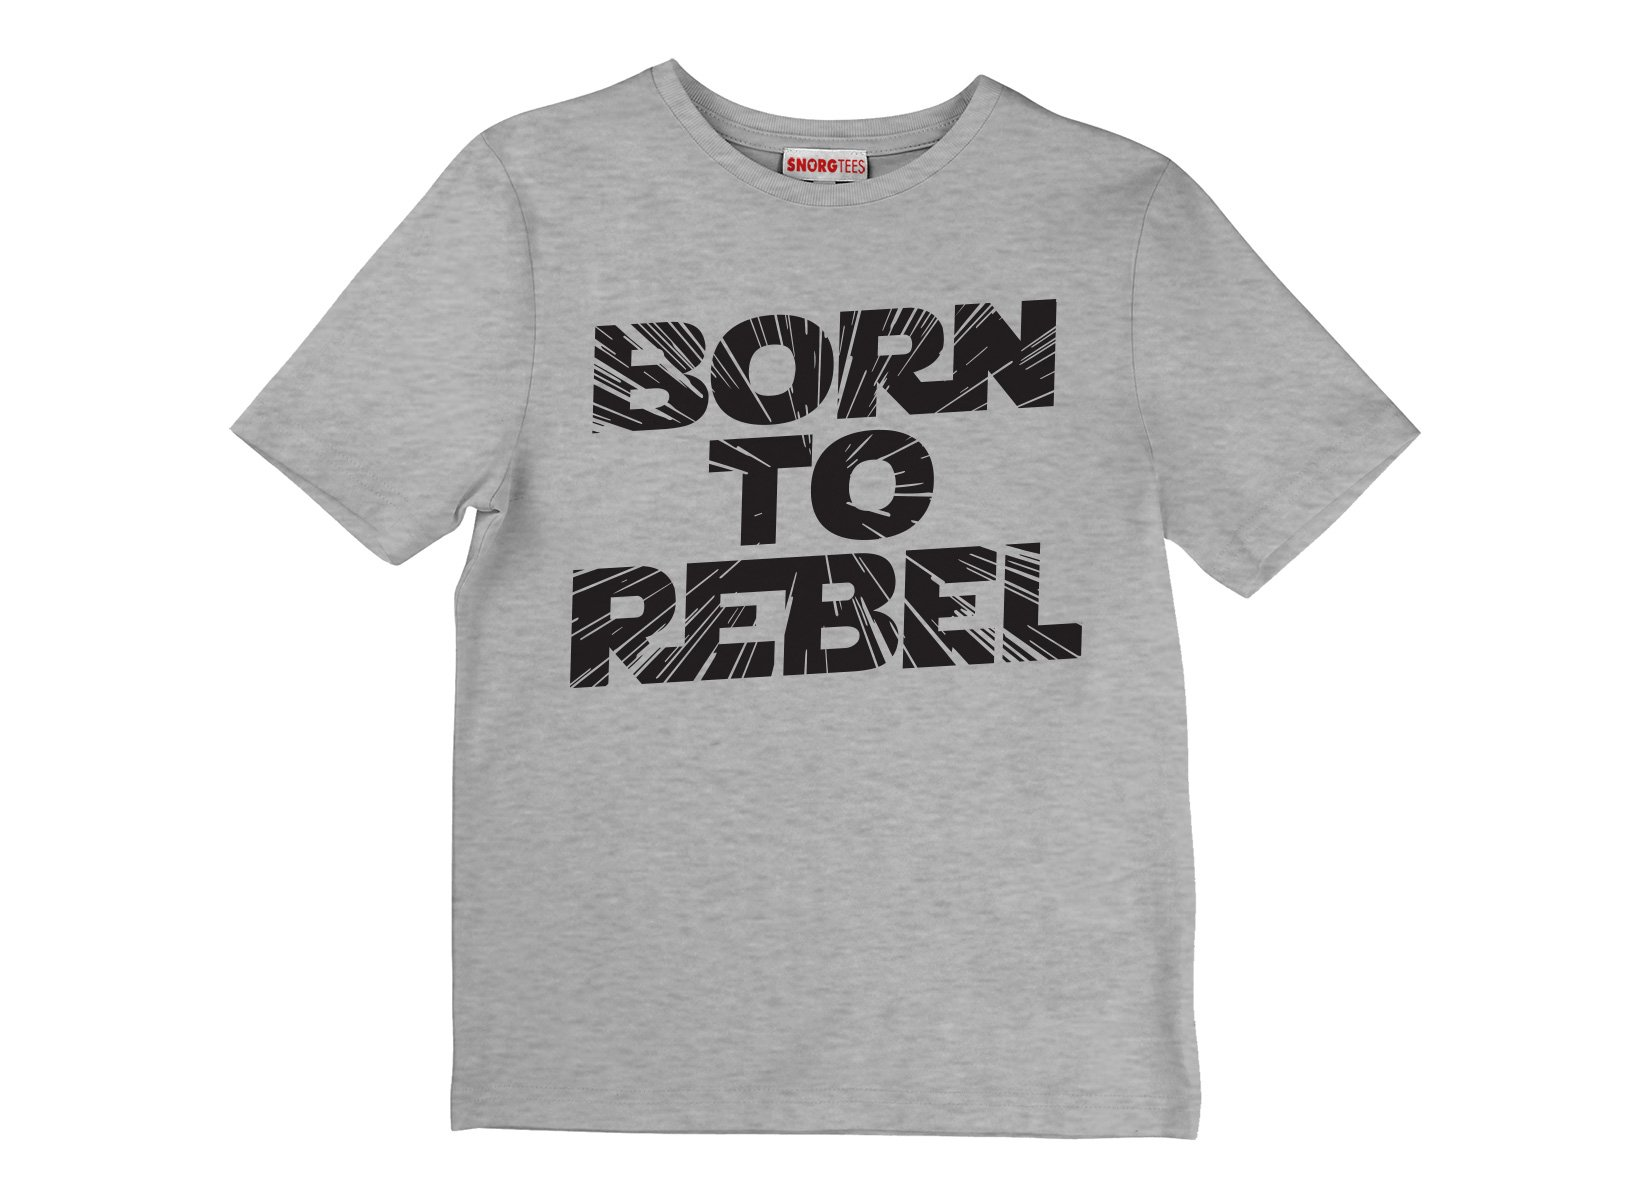 Born To Rebel on Kids T-Shirt